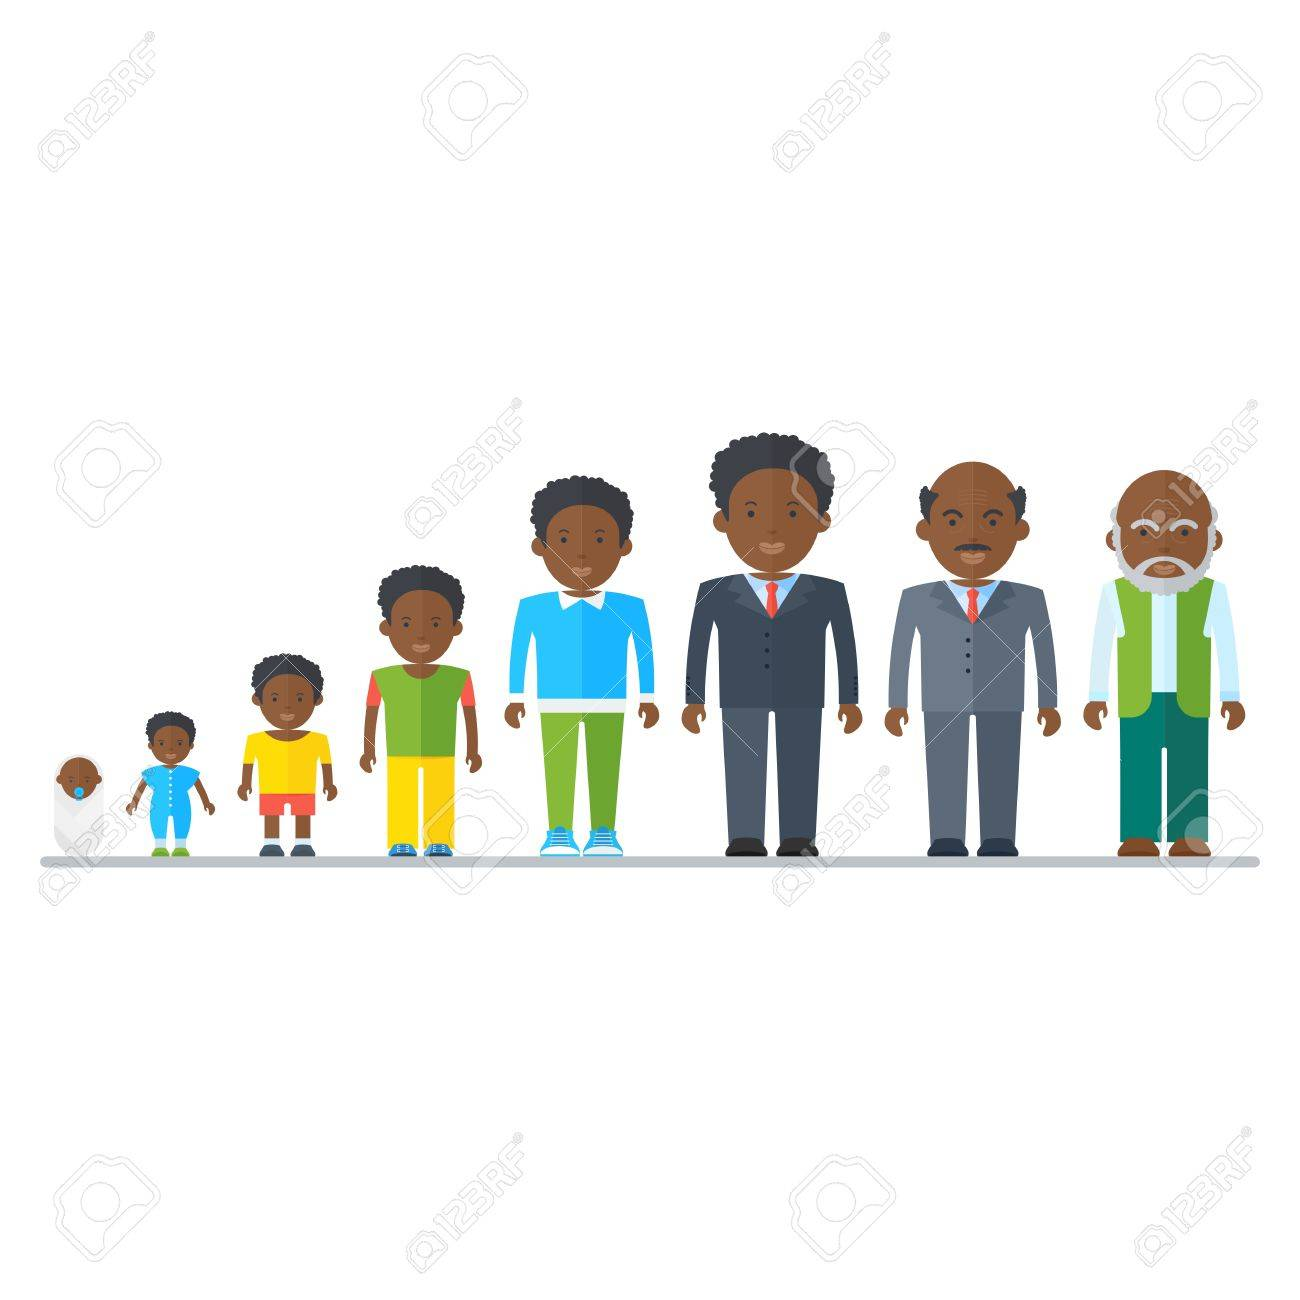 Aging concept of African American male characters. Family dynasty.